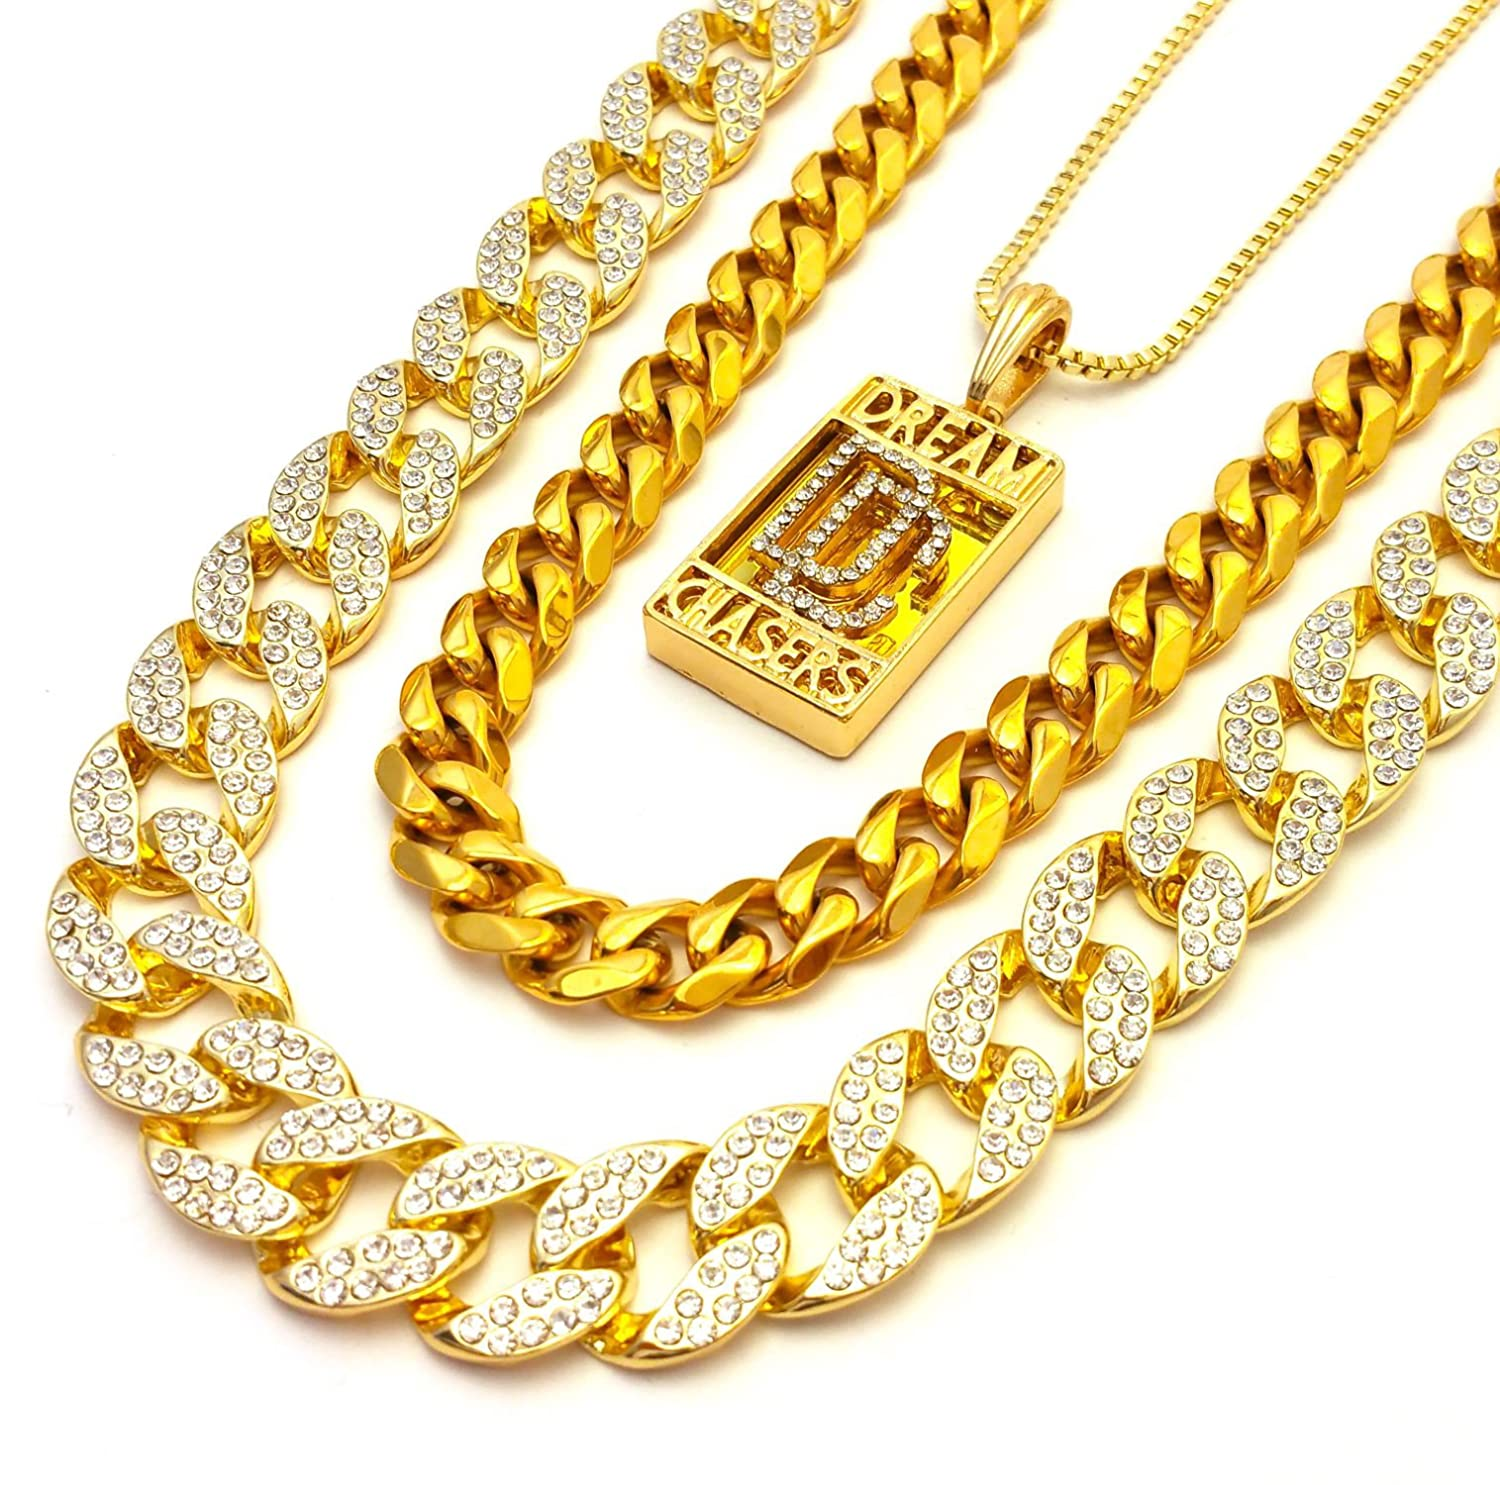 67ce82f20d2fa Mens Iced Out Cubic Zirconia CZ Gold Finish Miami Cuban Link Dream Chasers  Pendant Chain Combo Set of 3 Necklaces